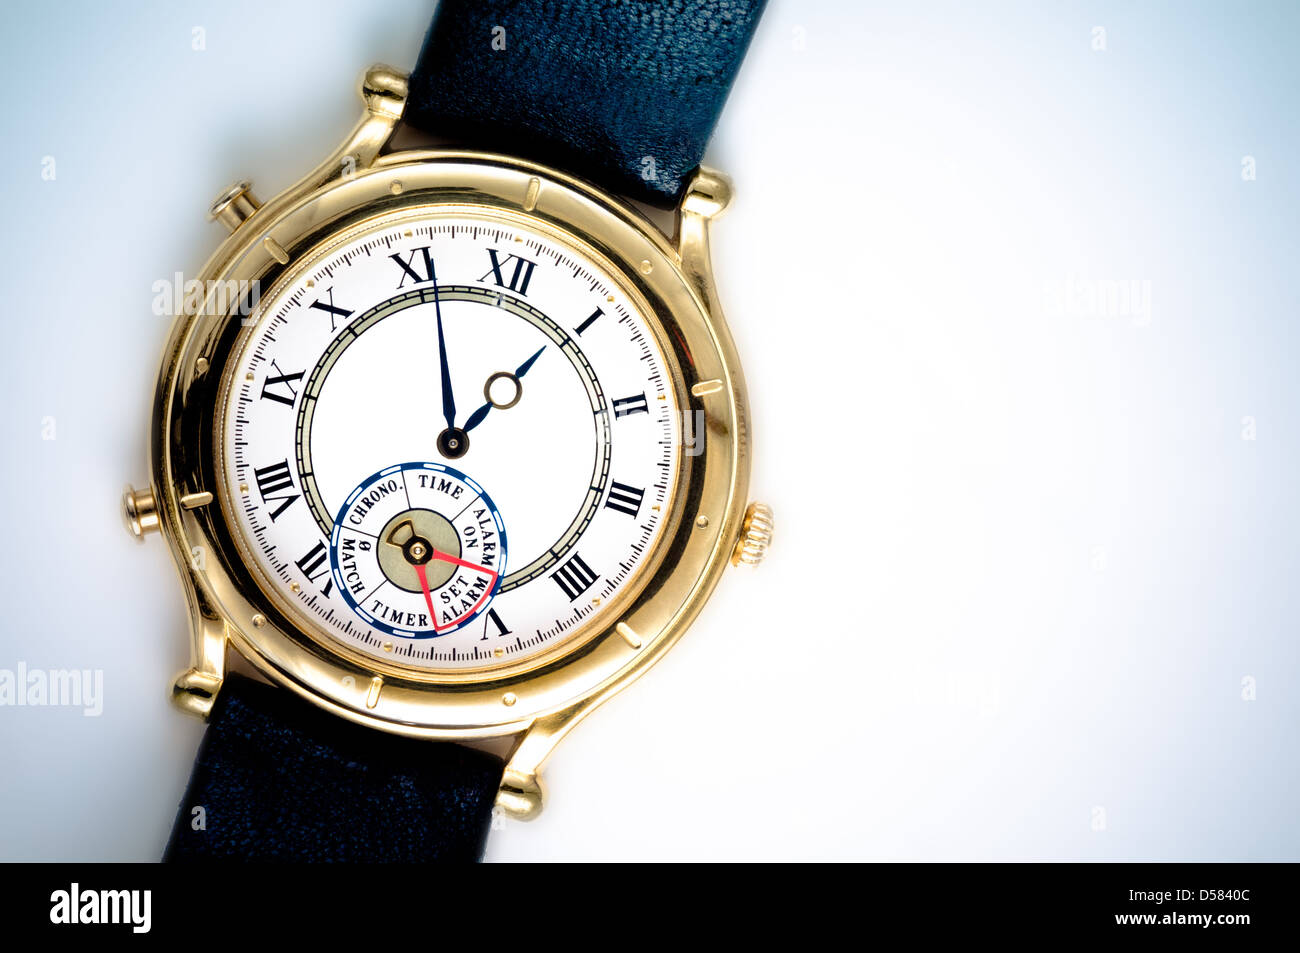 Analog wrist watch closeup - Stock Image